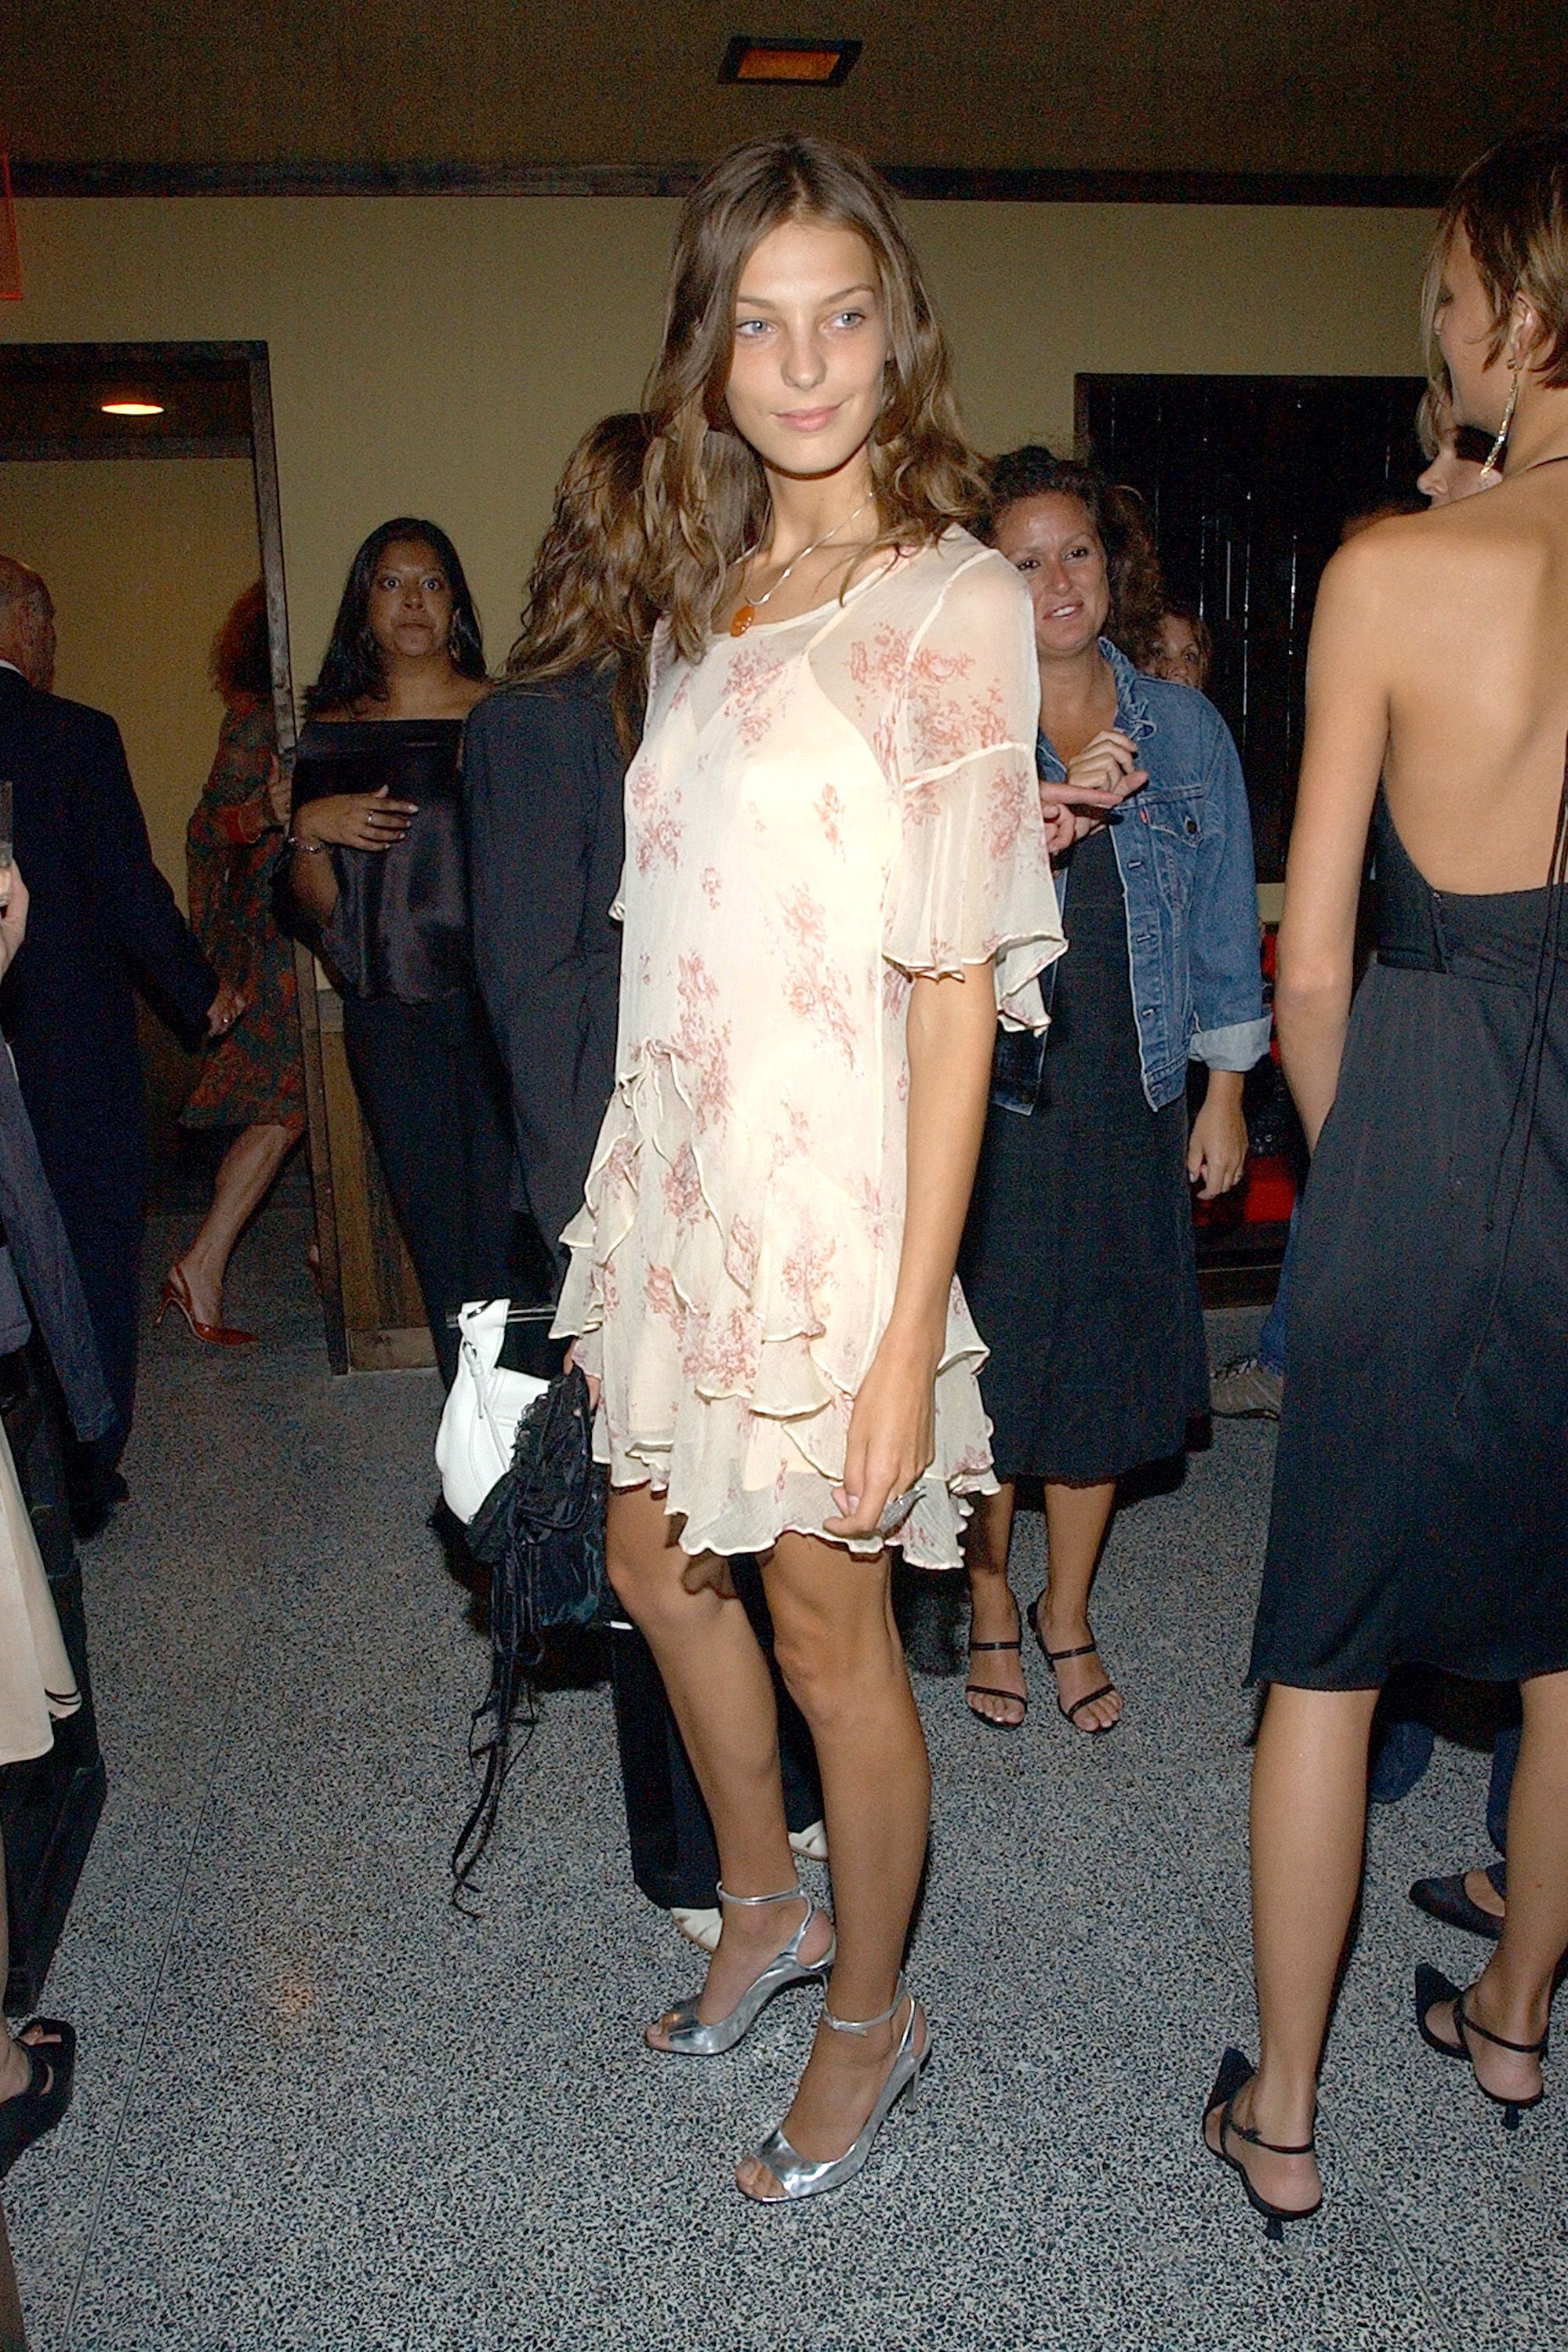 Daria Werbowy at the W Magazine party for Kate Moss (Photo by Dimitrios Kambouris/WireImage for W Magazine - DO NOT USE - GO TO WWD)